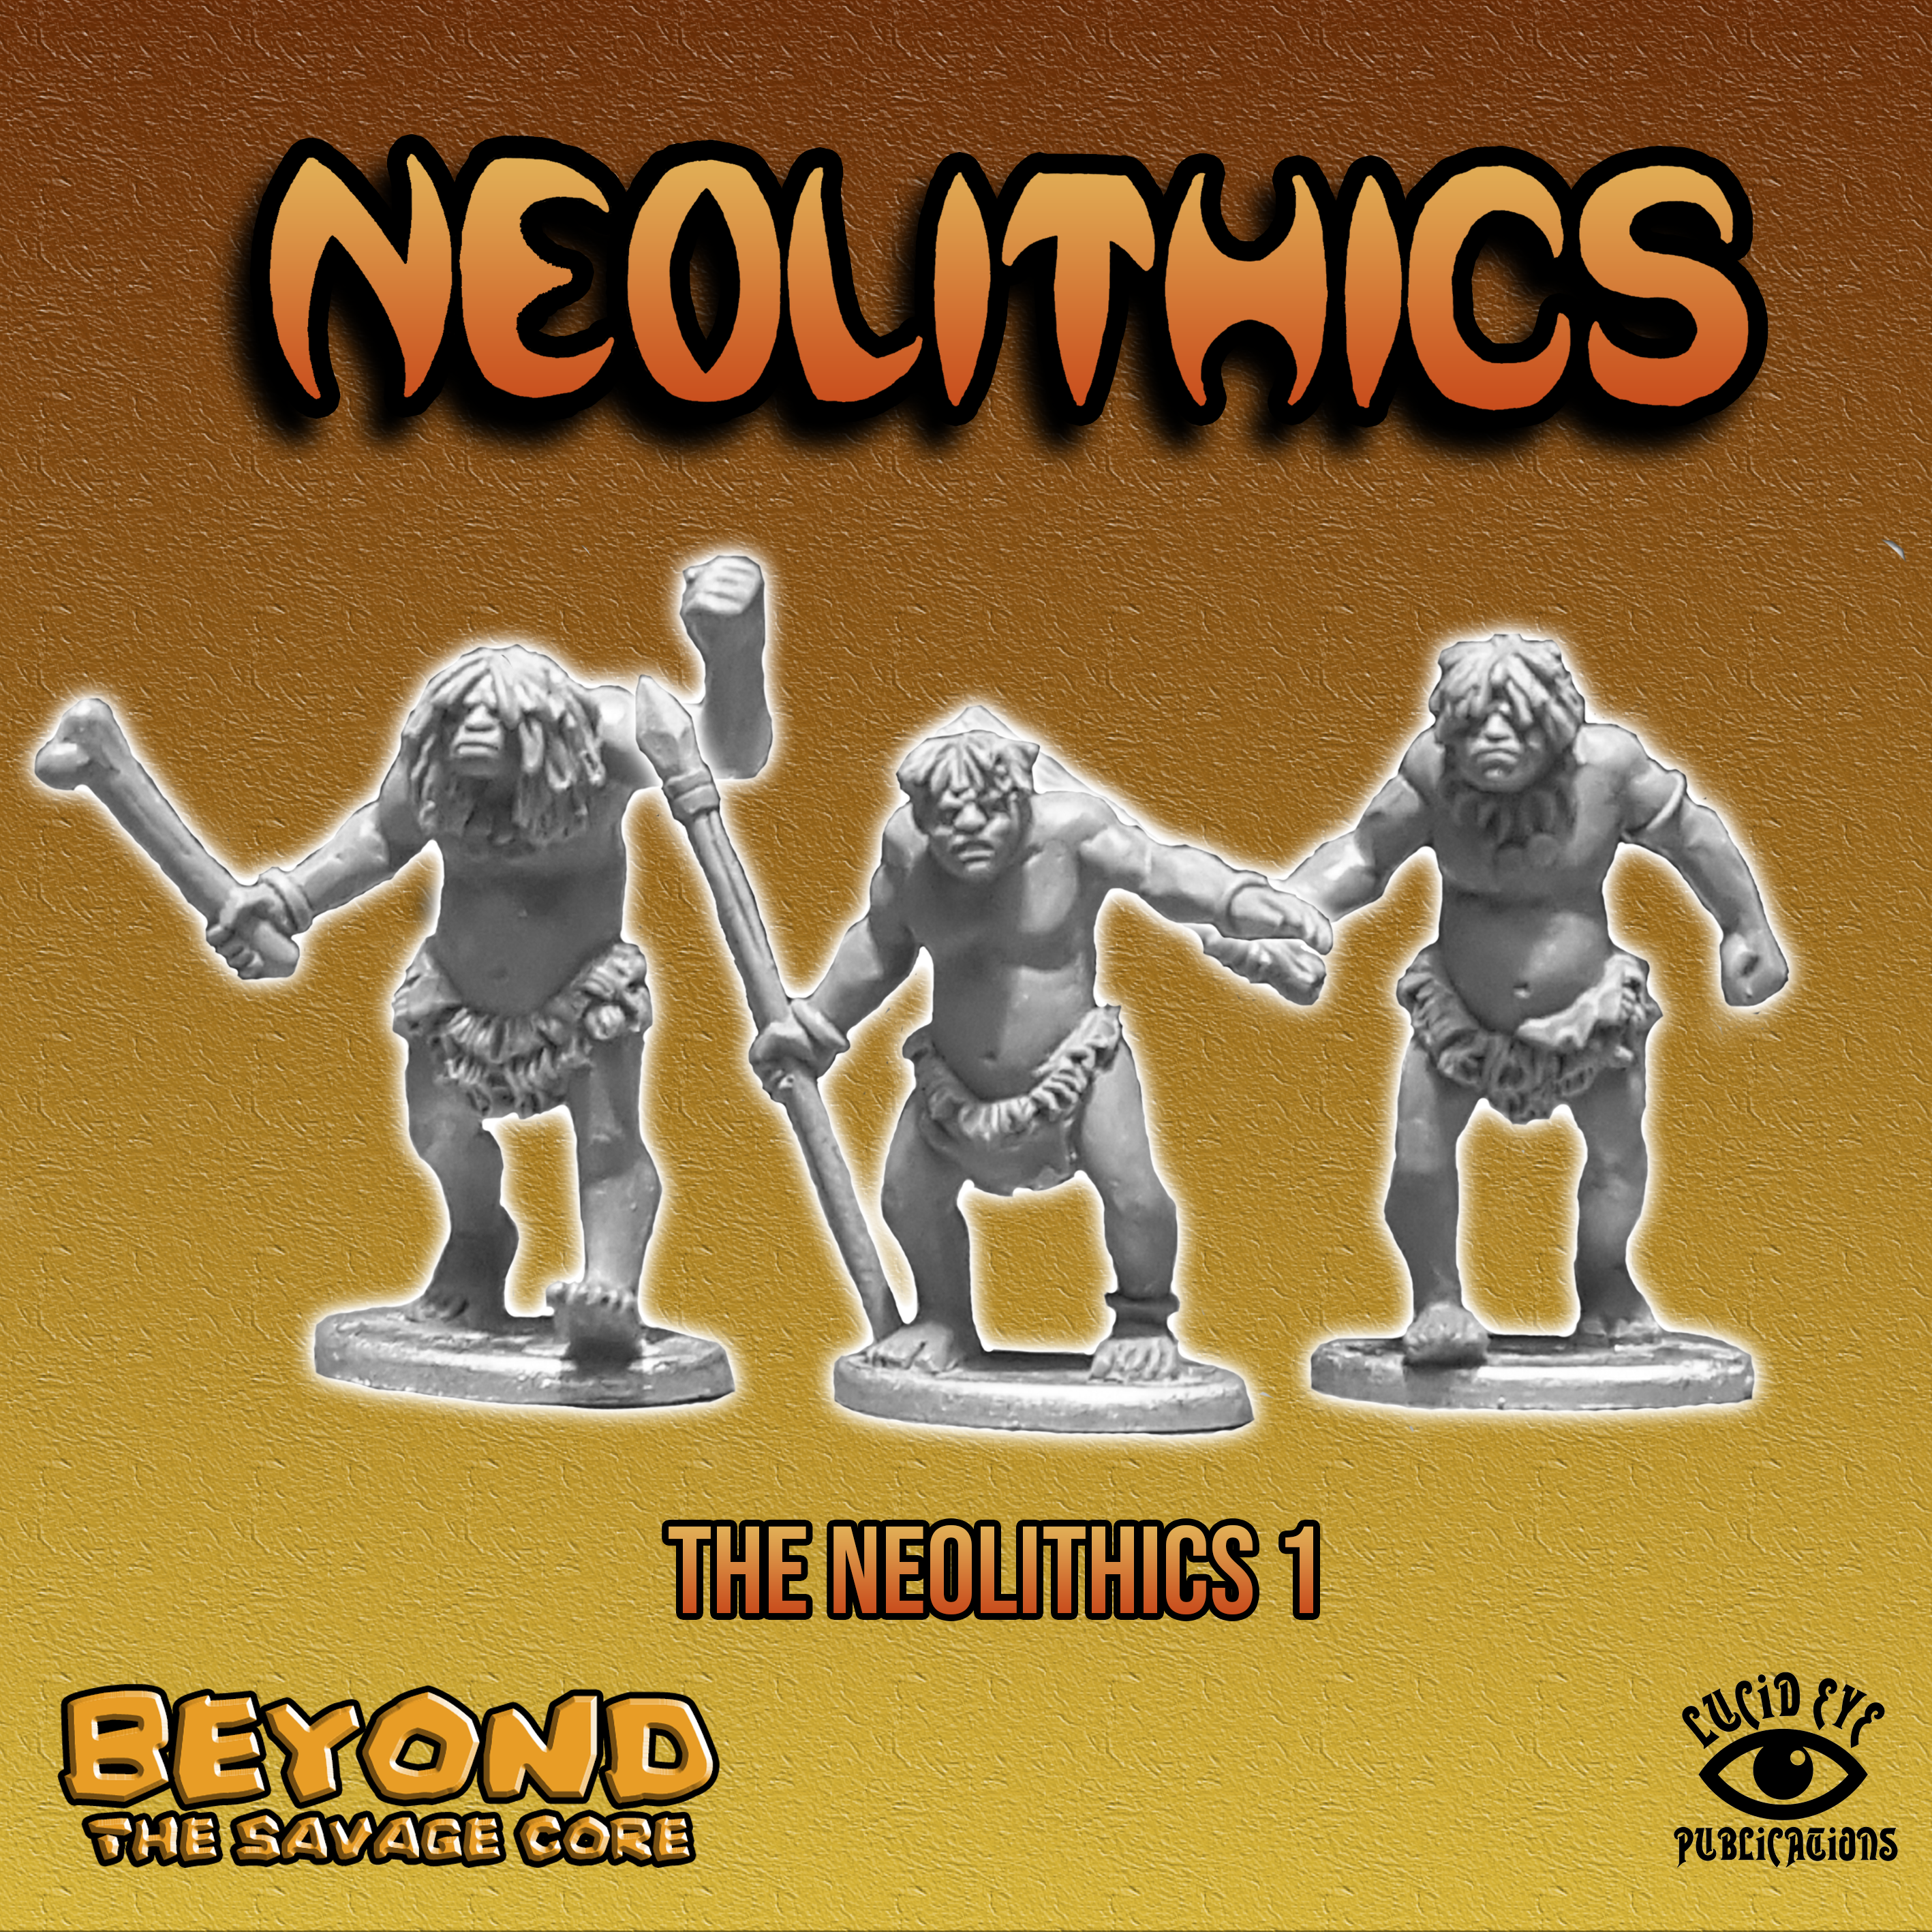 Beyond the Savage Core: The Neolithics 1